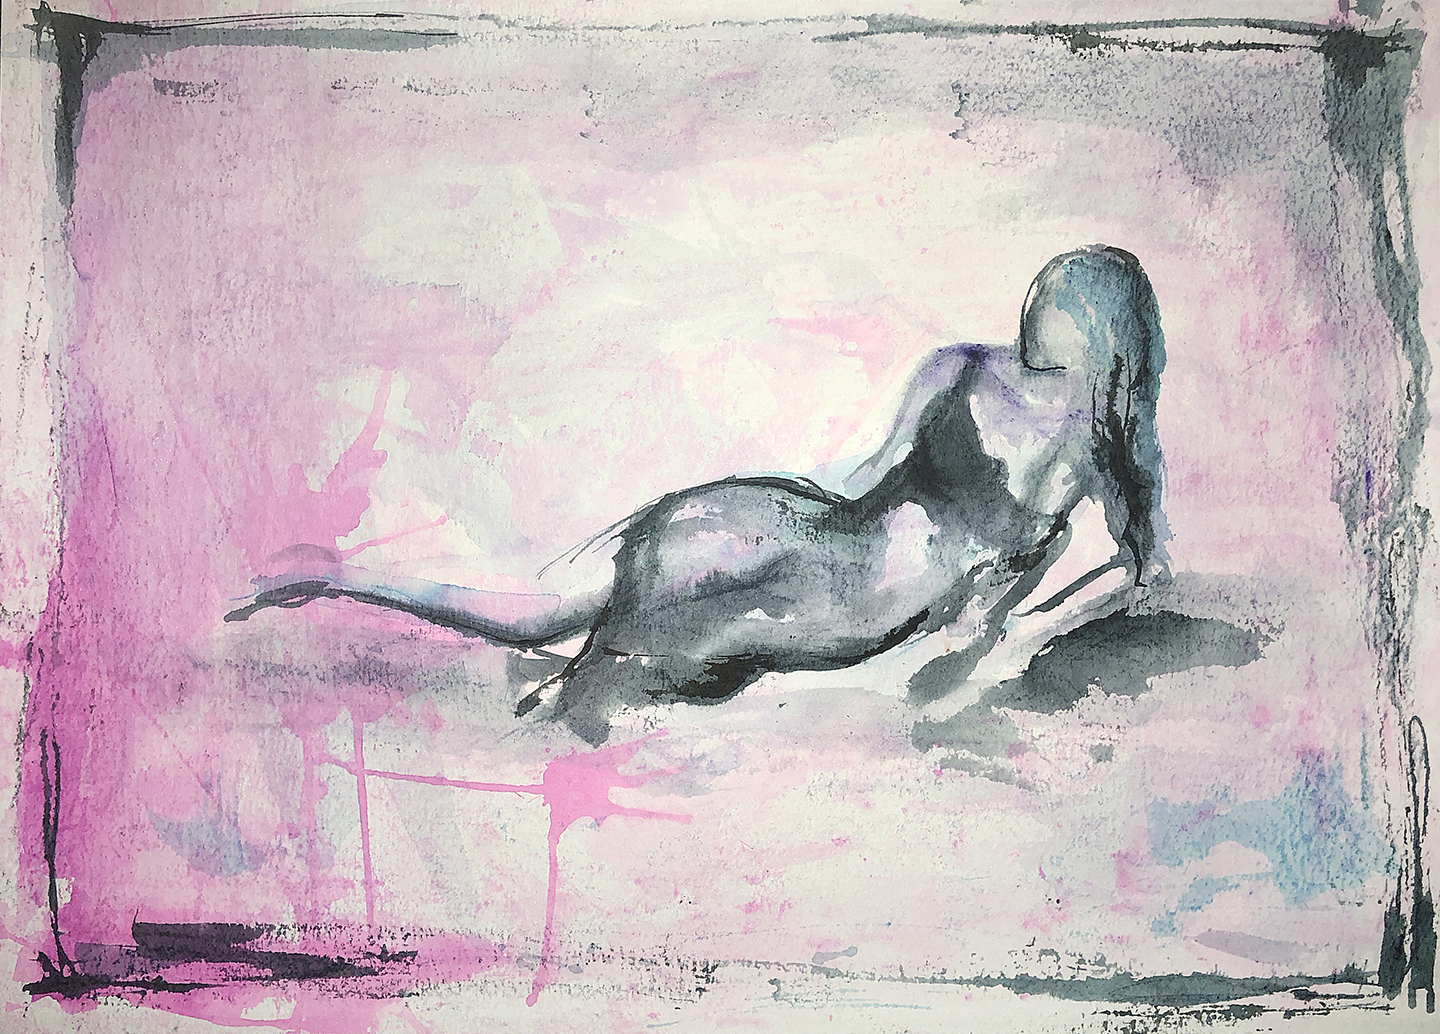 Watercolor on paper, painted with palette knives, female figure reclining.